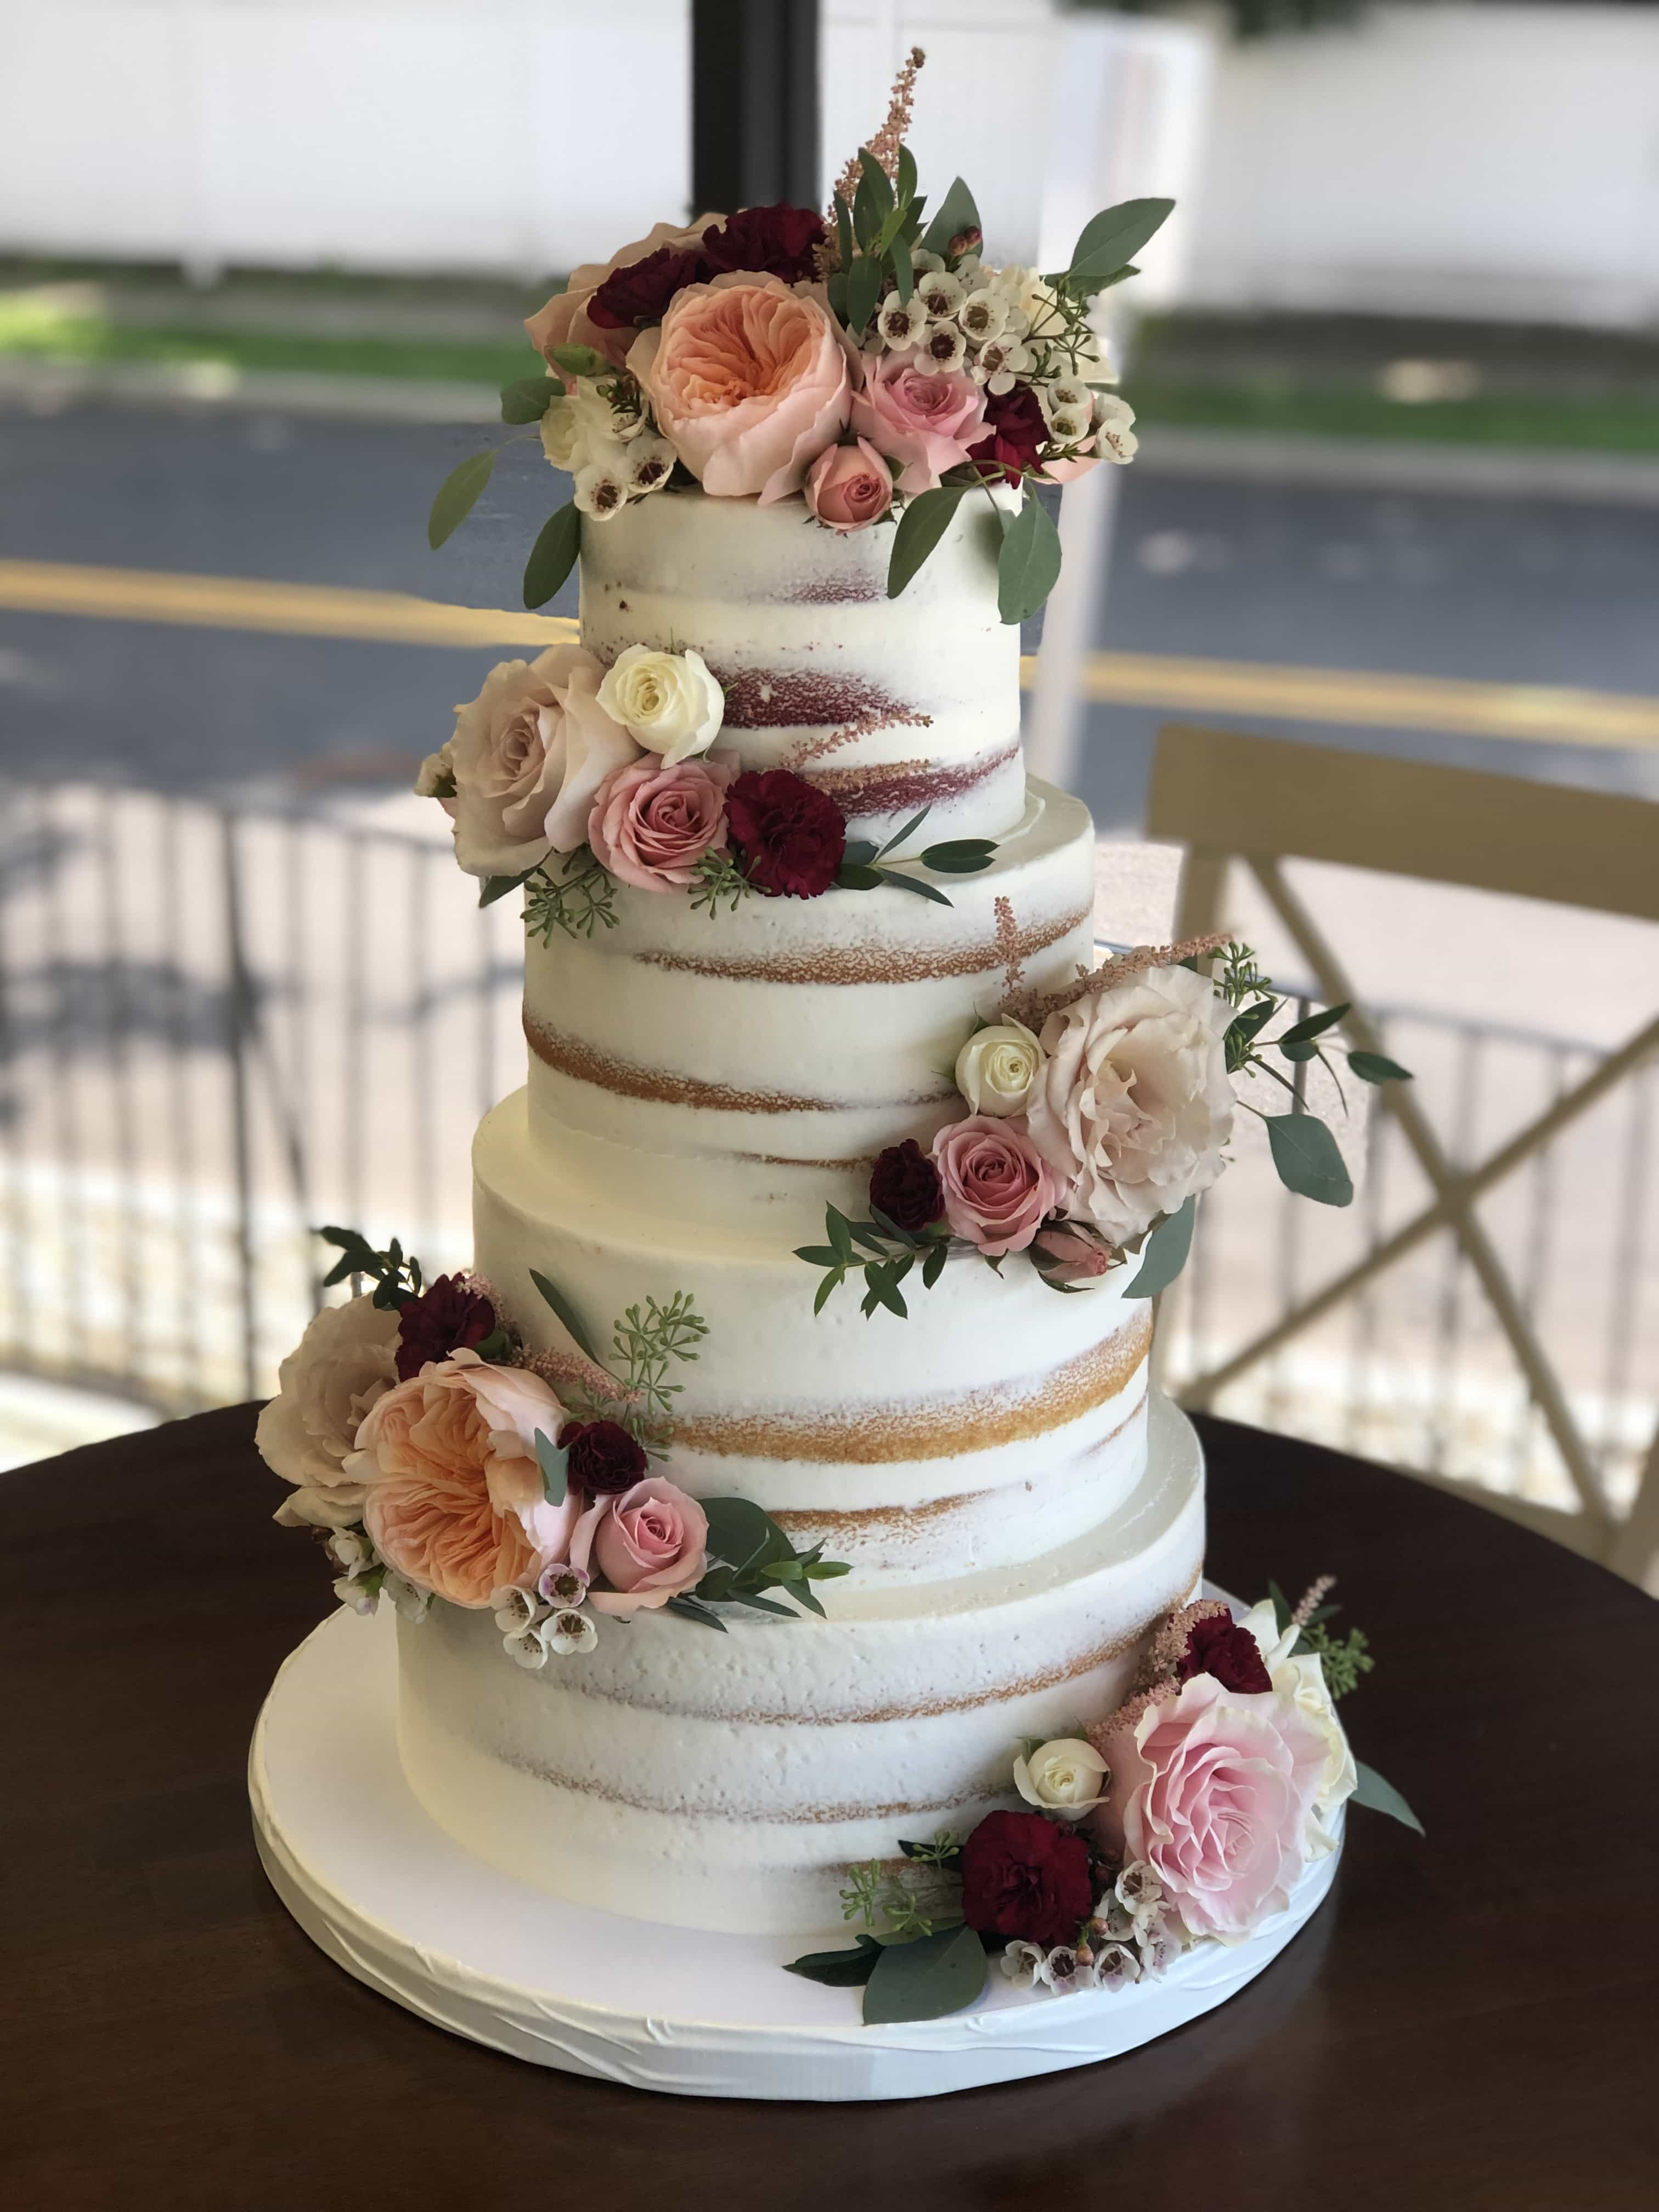 Naked Cake with Pink Flowers - Elizabeth Anne Designs: The